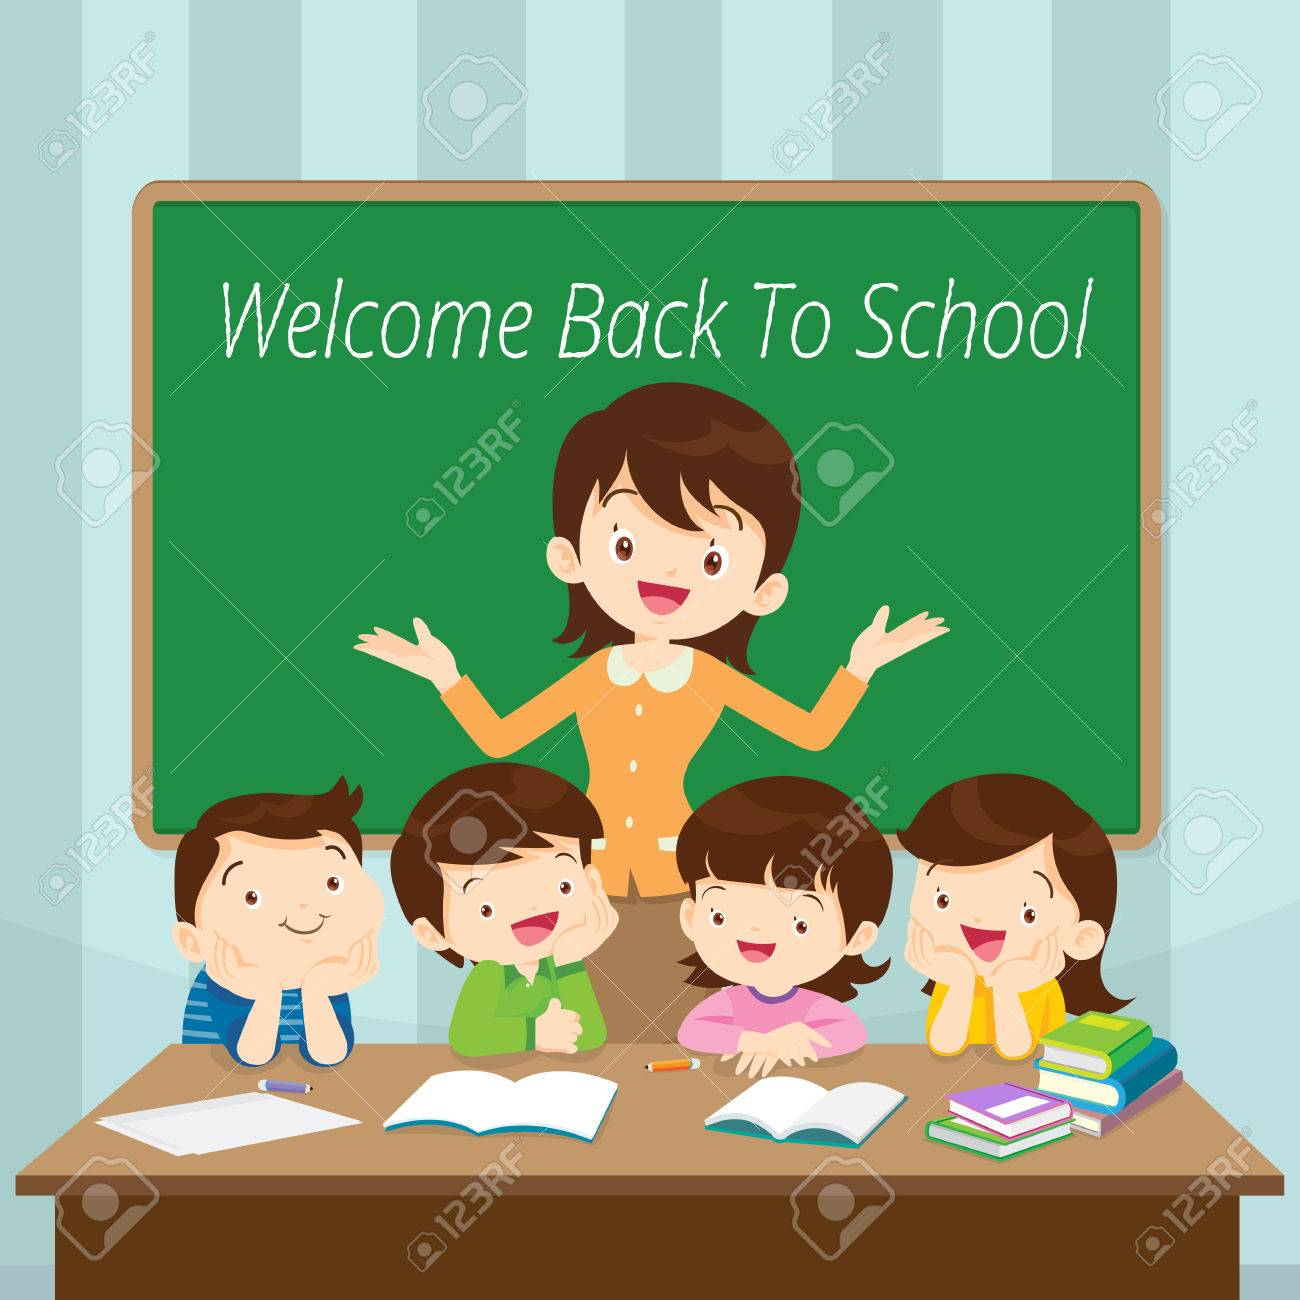 Welcome Back To School, Teacher and Students in front classroom